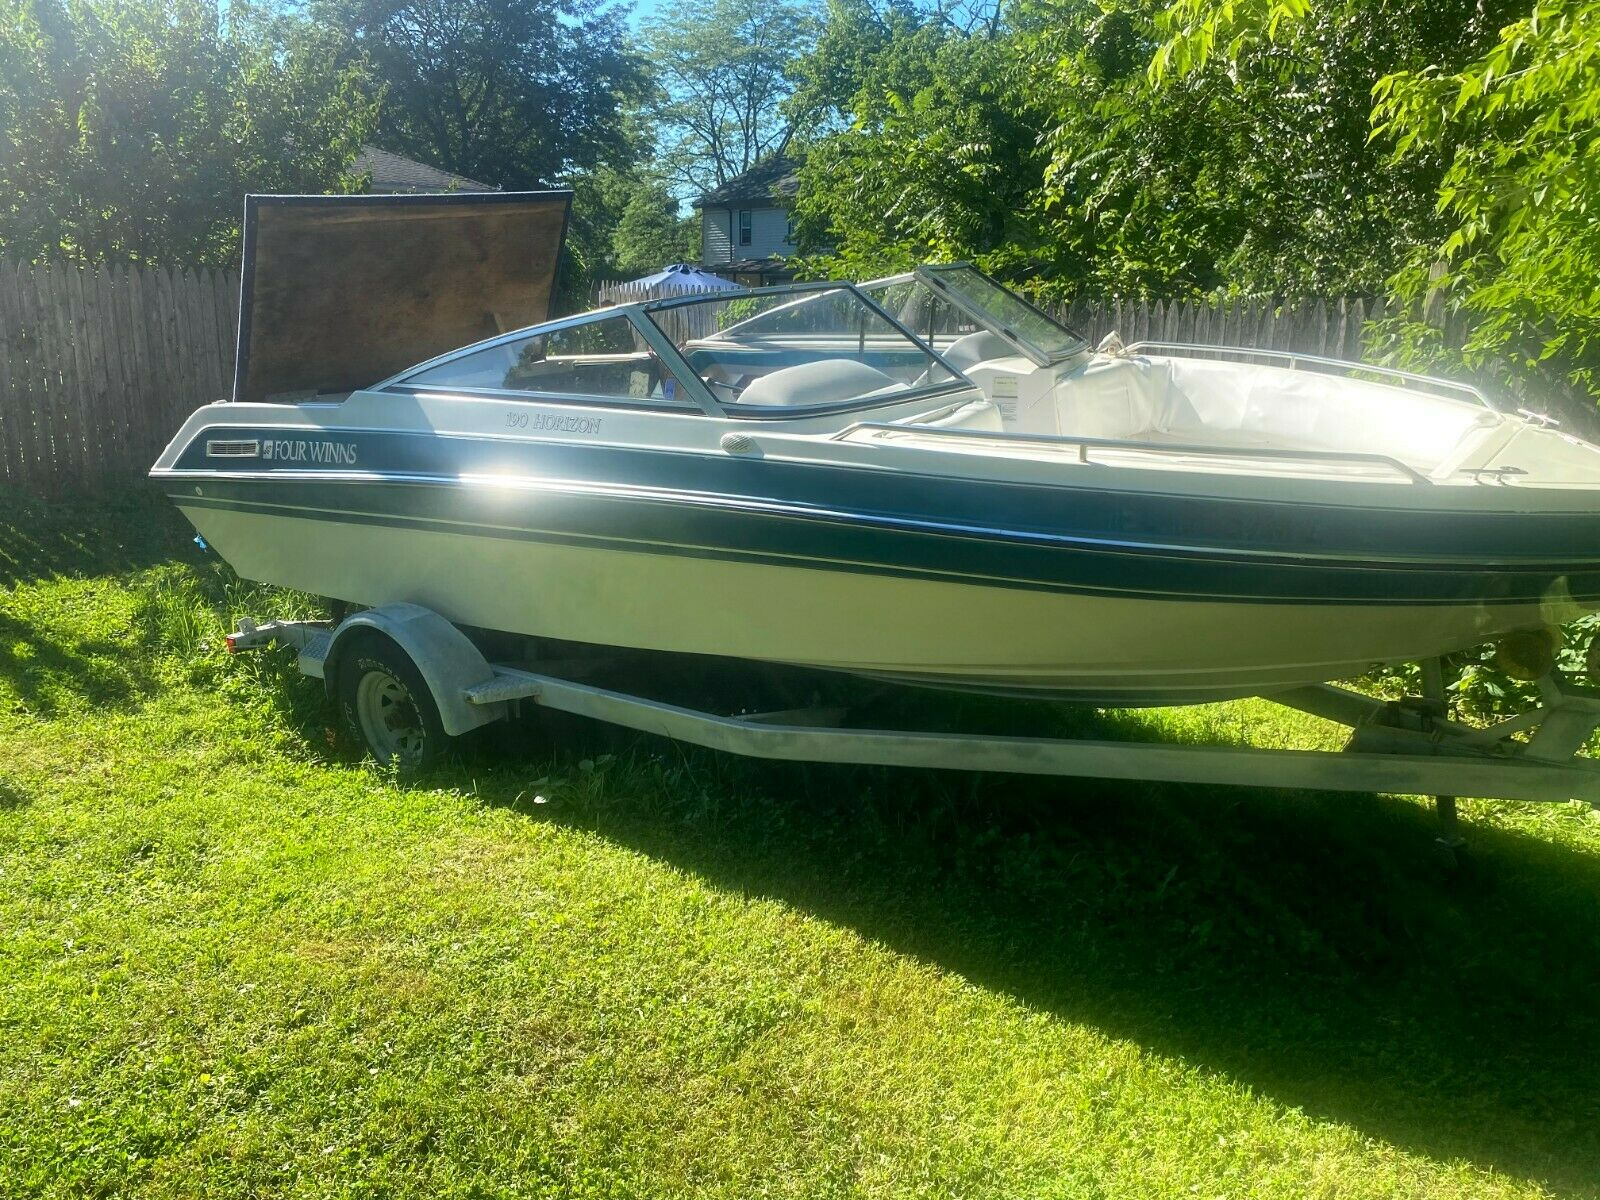 ****No reserve*****Four Winns Boat 19 foot with trailer